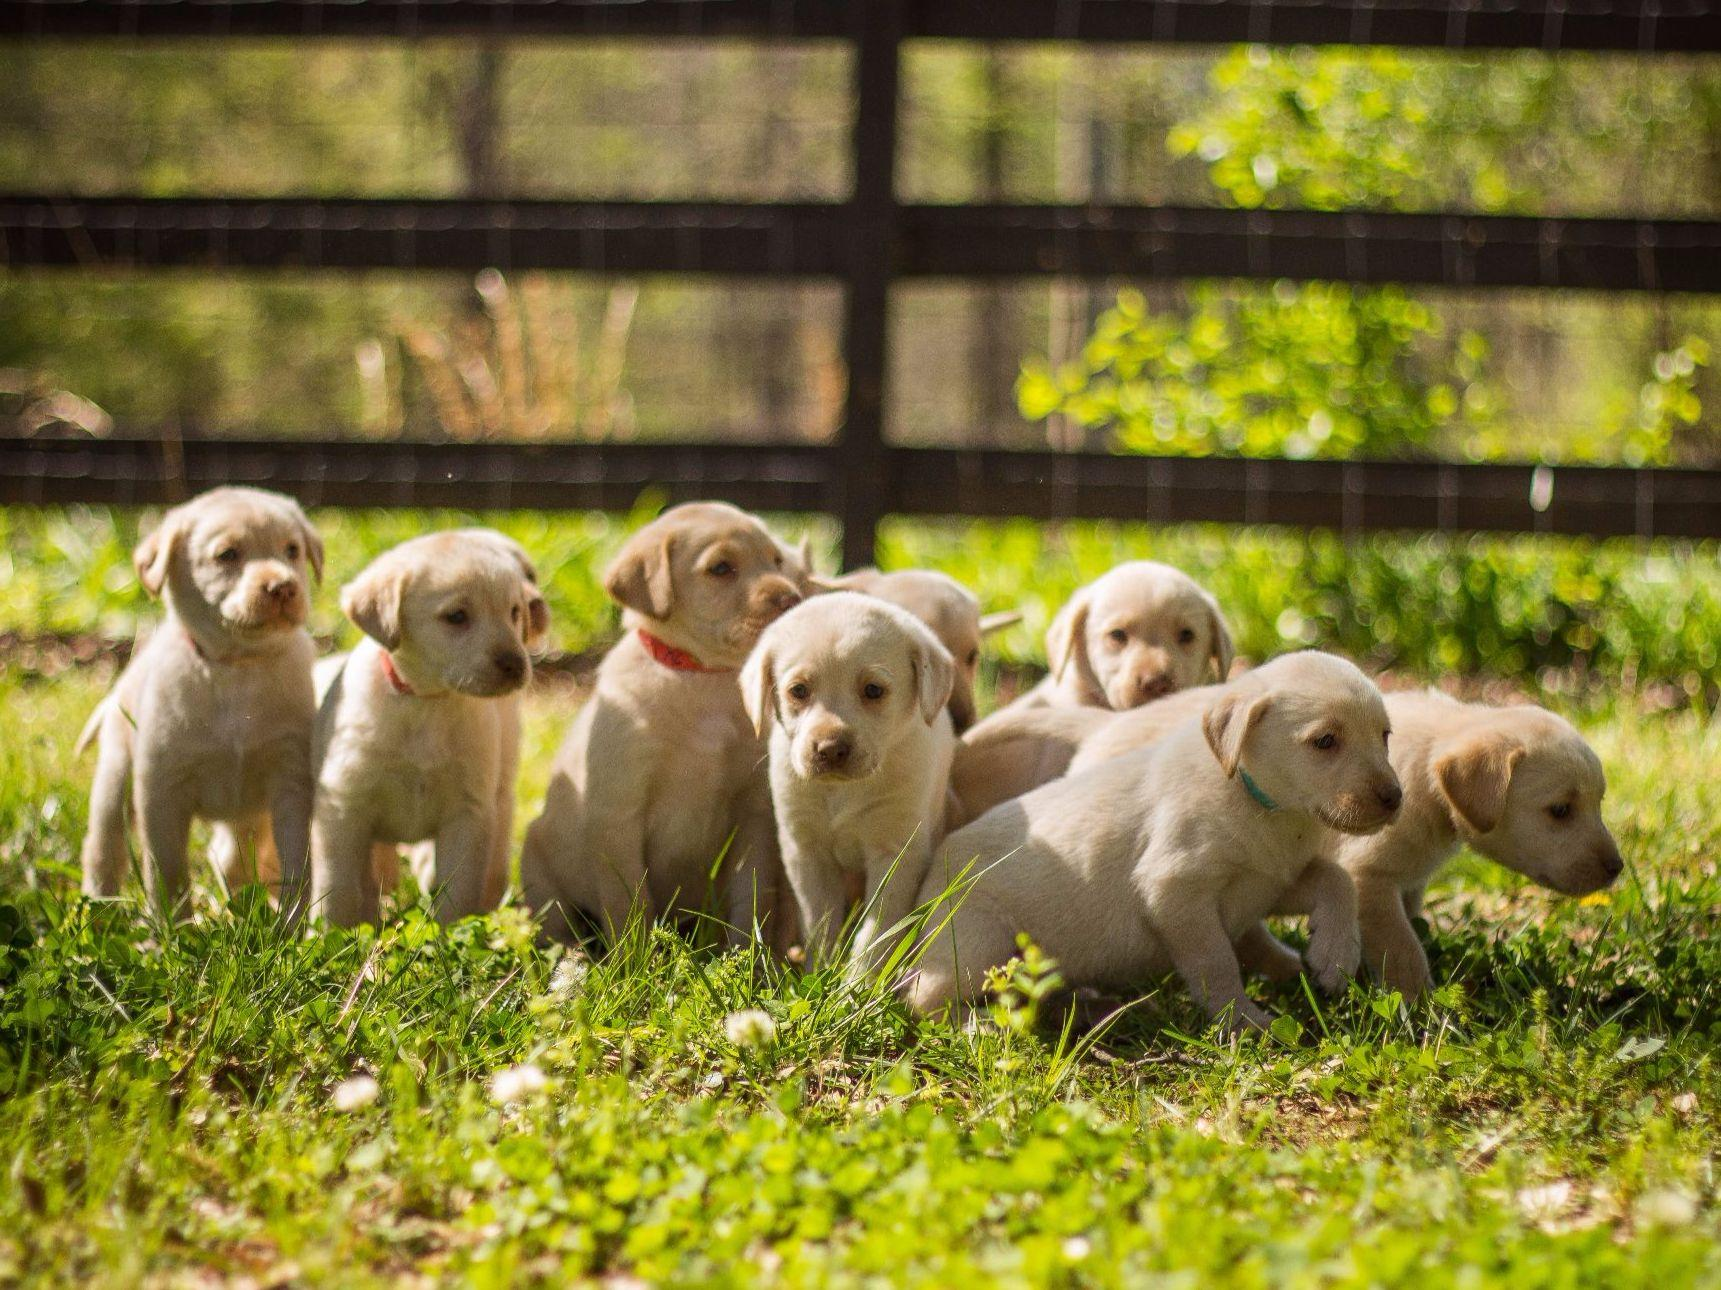 AKC Puppies For Sale In Georgia - Page 5 - AKC Marketplace